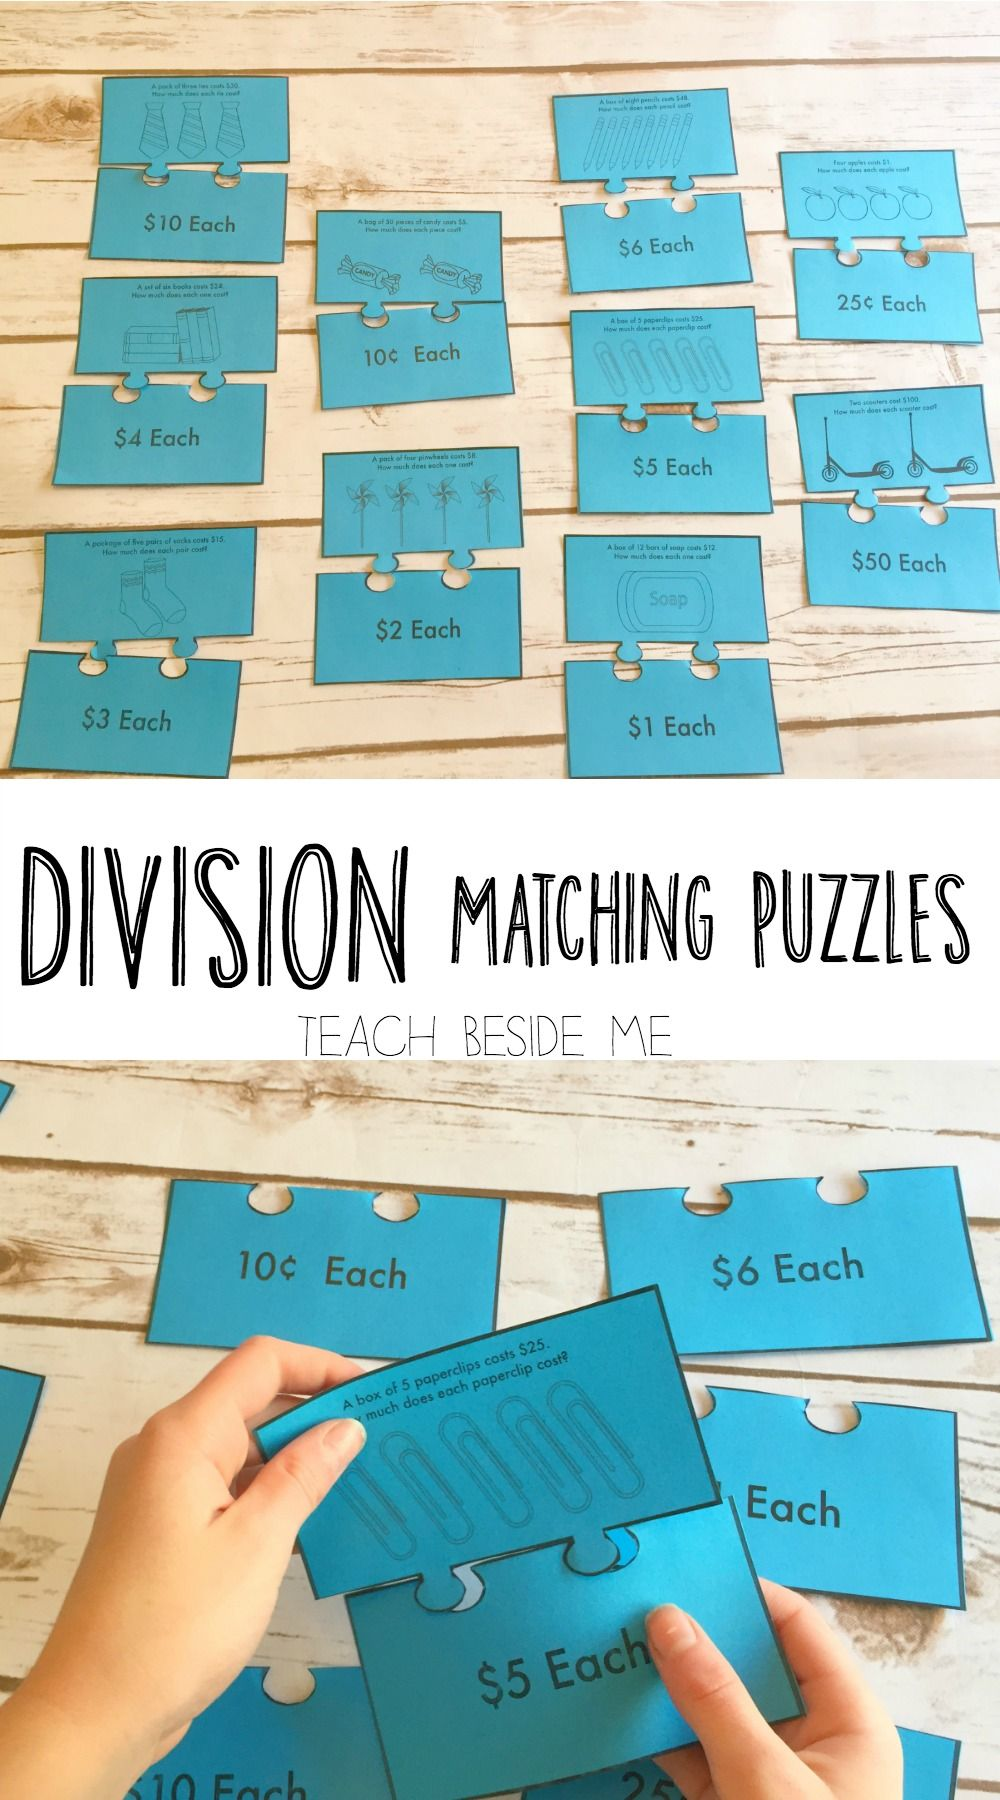 Teaching Maths Division Matching Puzzles Teach Beside Me Pinterest Math